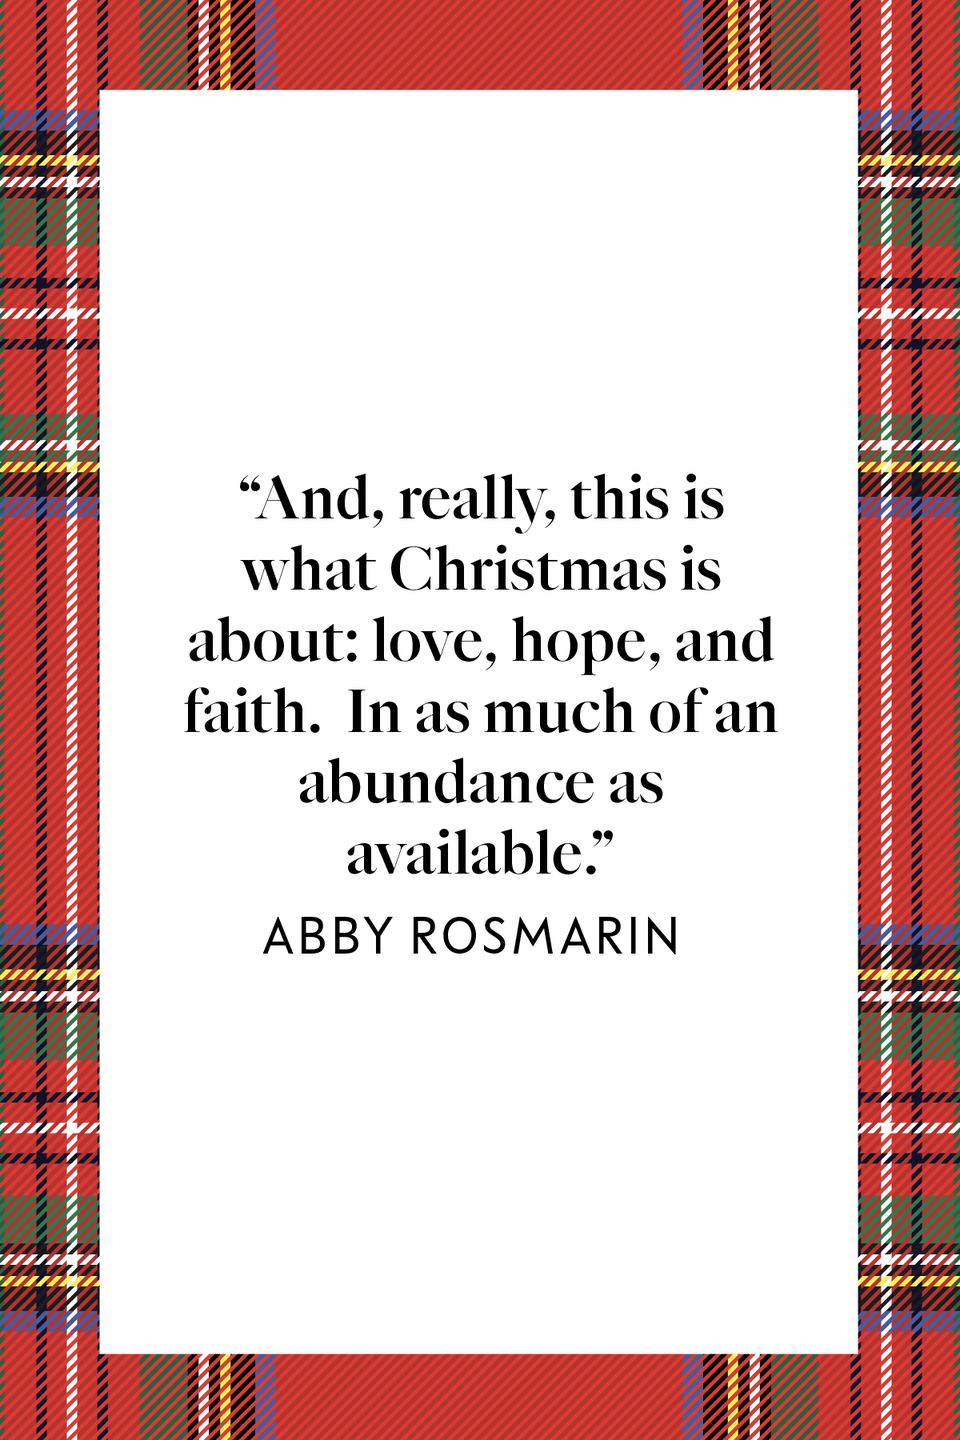 "<p>""And, really, this is what Christmas is about: love, hope, and faith. In as much of an abundance as available,"" author Abby Rosmarin wrote in a 2014 <em><a href=""https://thoughtcatalog.com/abby-rosmarin/2014/12/when-you-cant-find-the-christmas-spirit/"" rel=""nofollow noopener"" target=""_blank"" data-ylk=""slk:Thought Catalog"" class=""link rapid-noclick-resp"">Thought Catalog</a></em> article entitled ""When You Can't Find The Christmas Spirit.""</p>"